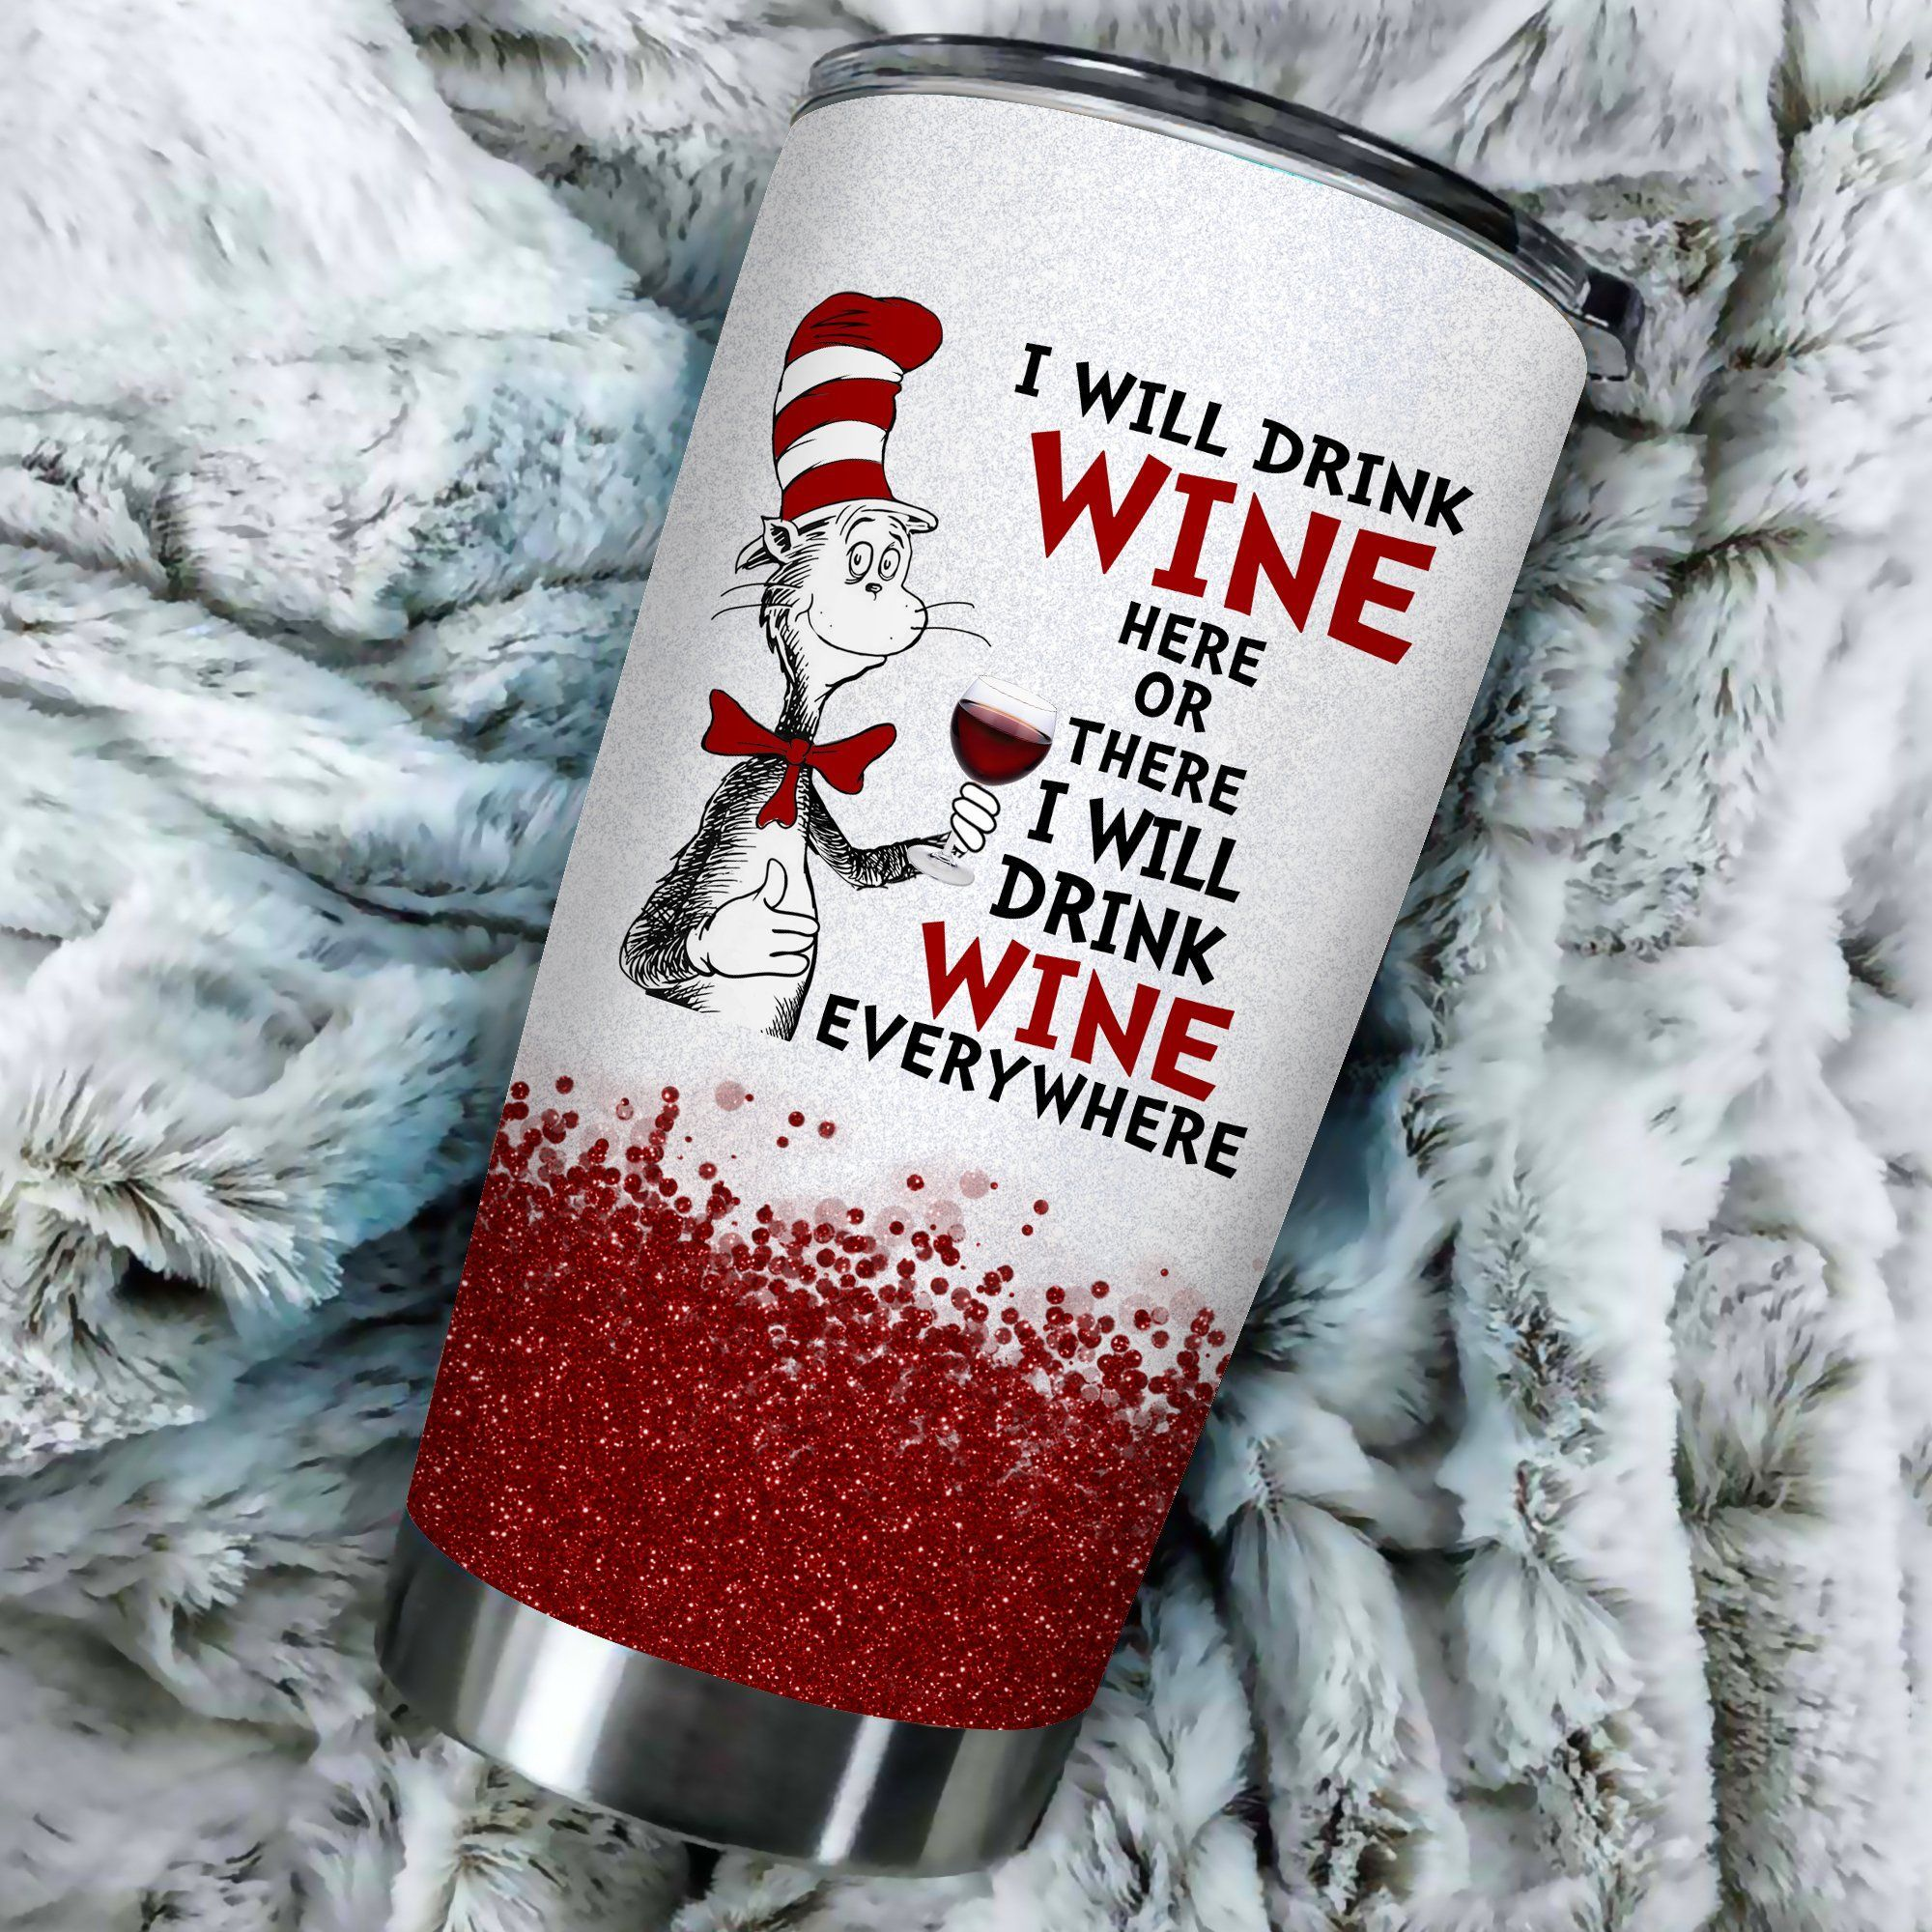 I will drink Wine here or there or Everywhere - Coffee Mug Gift Ideas 2020 - Tumbler Cup Unisex Tshirt